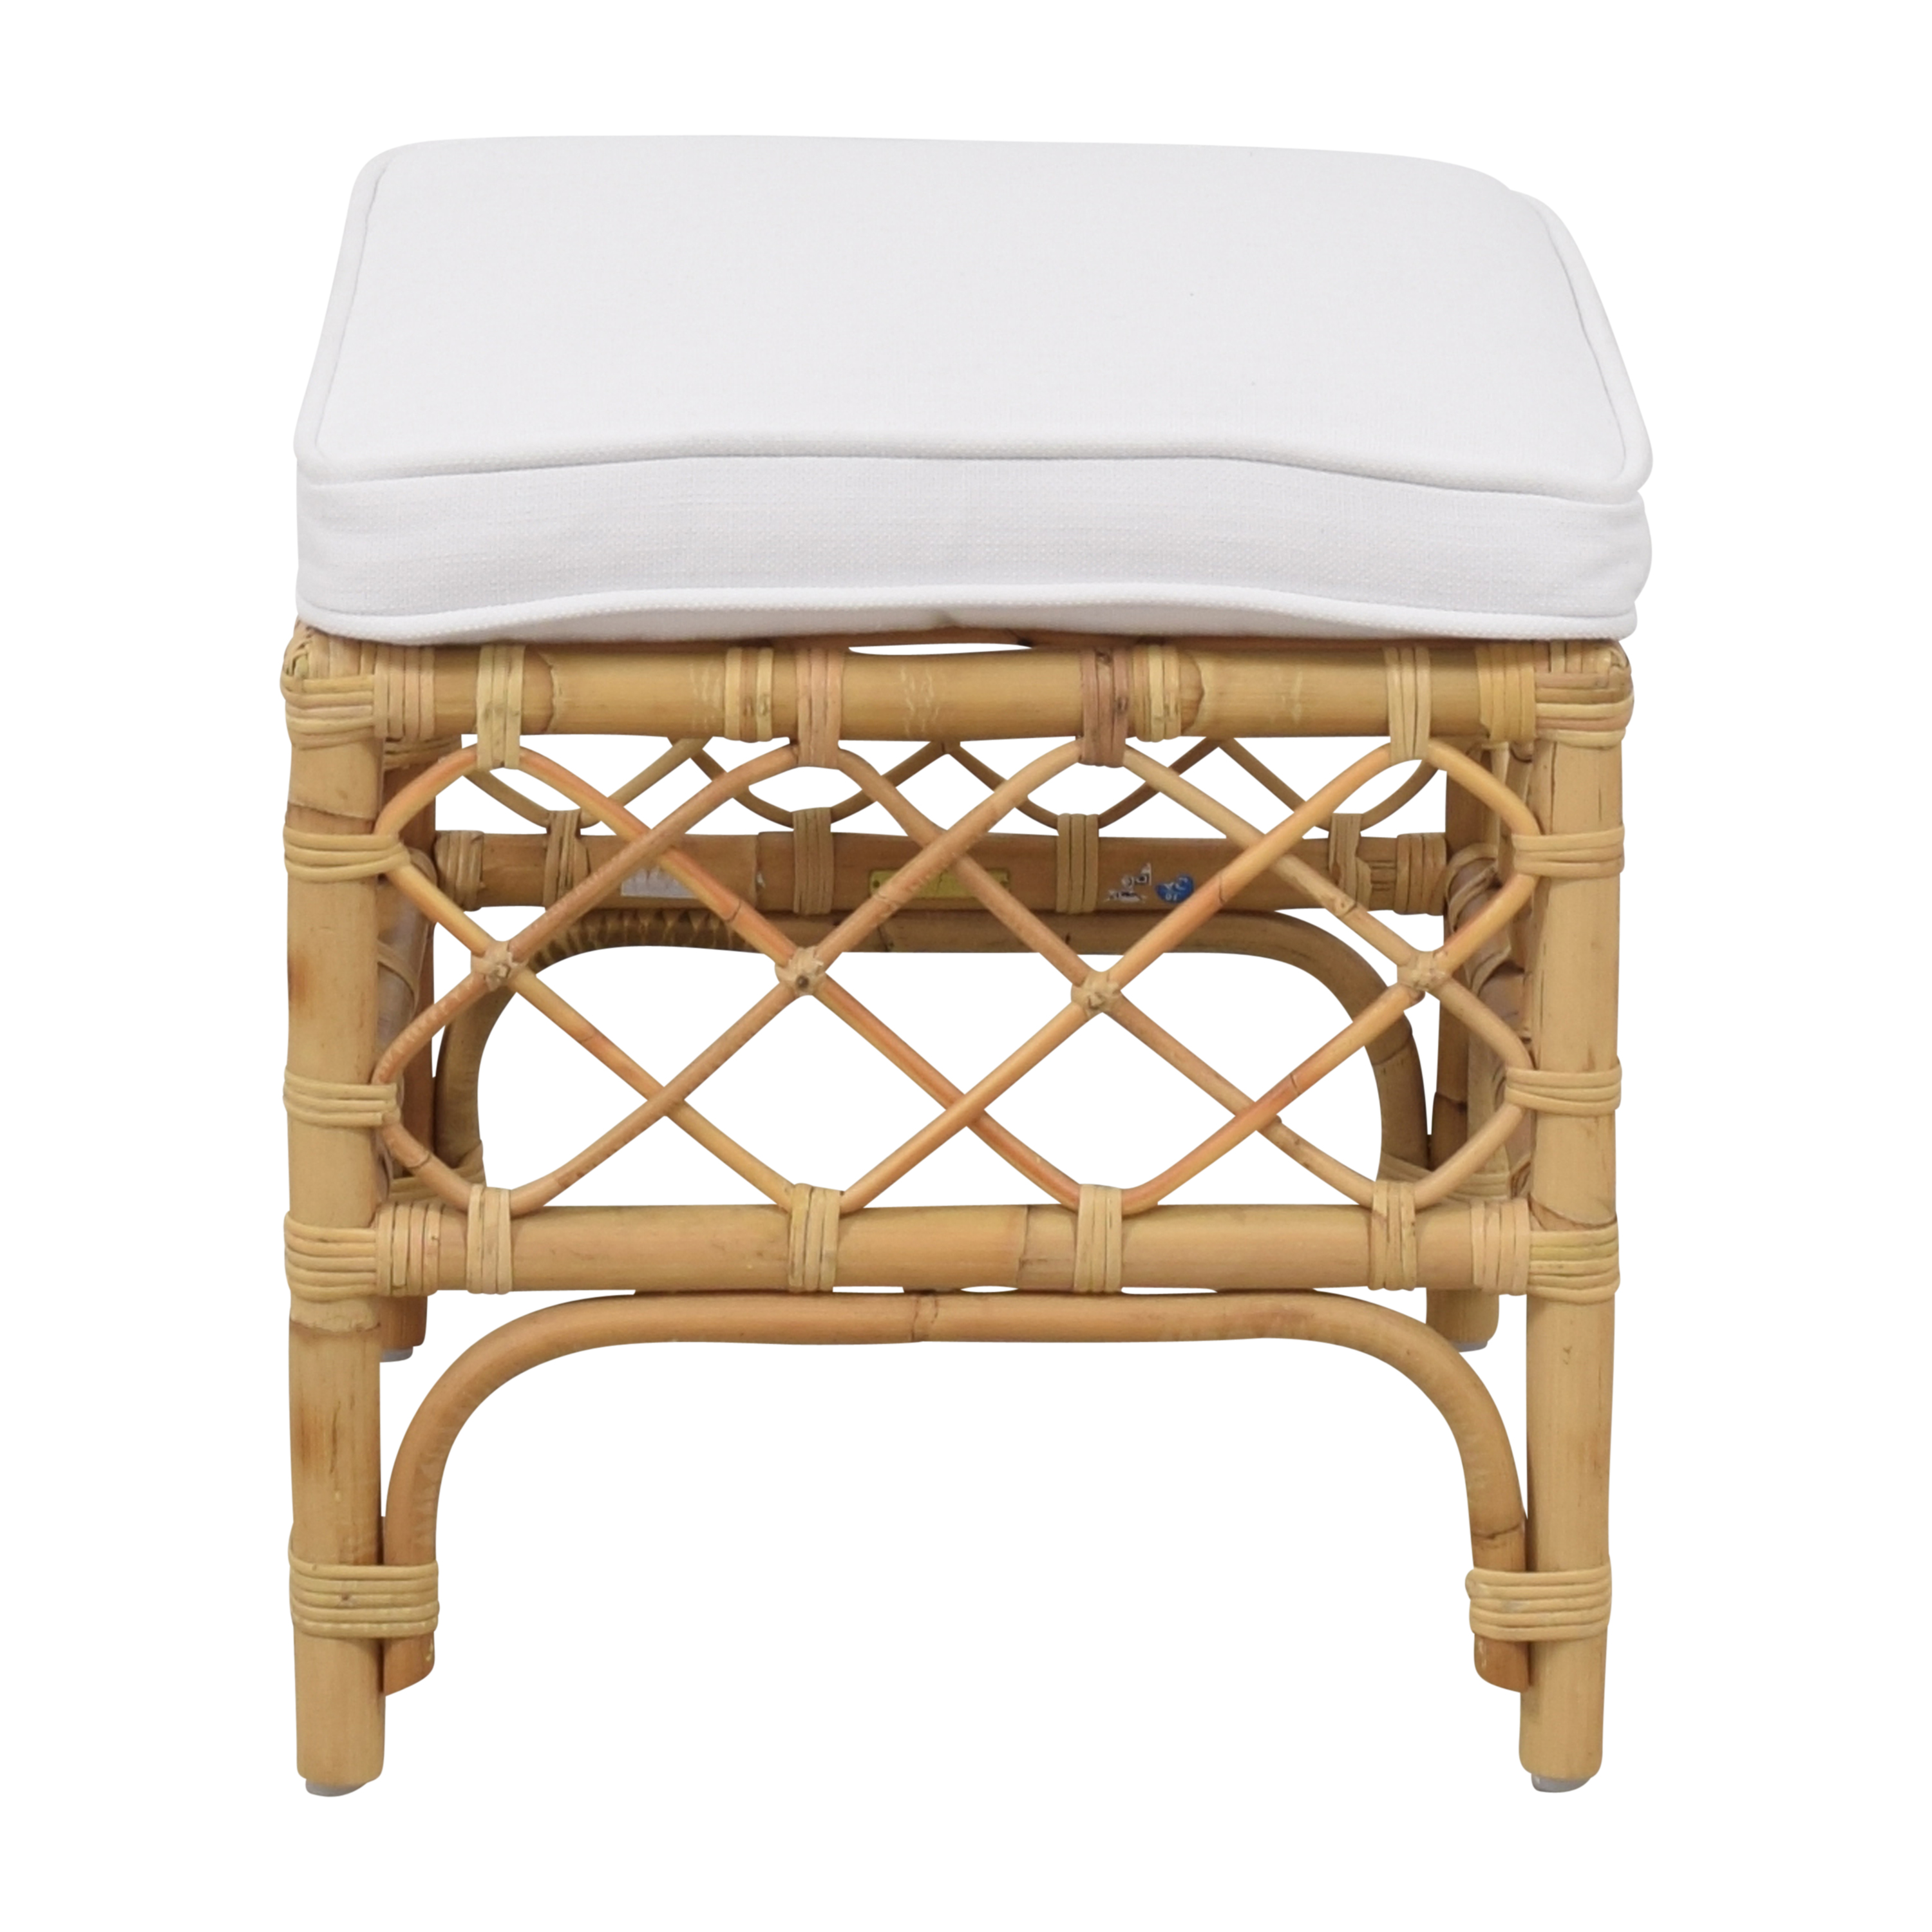 shop Serena & Lily Avalon Stool Serena & Lily Benches